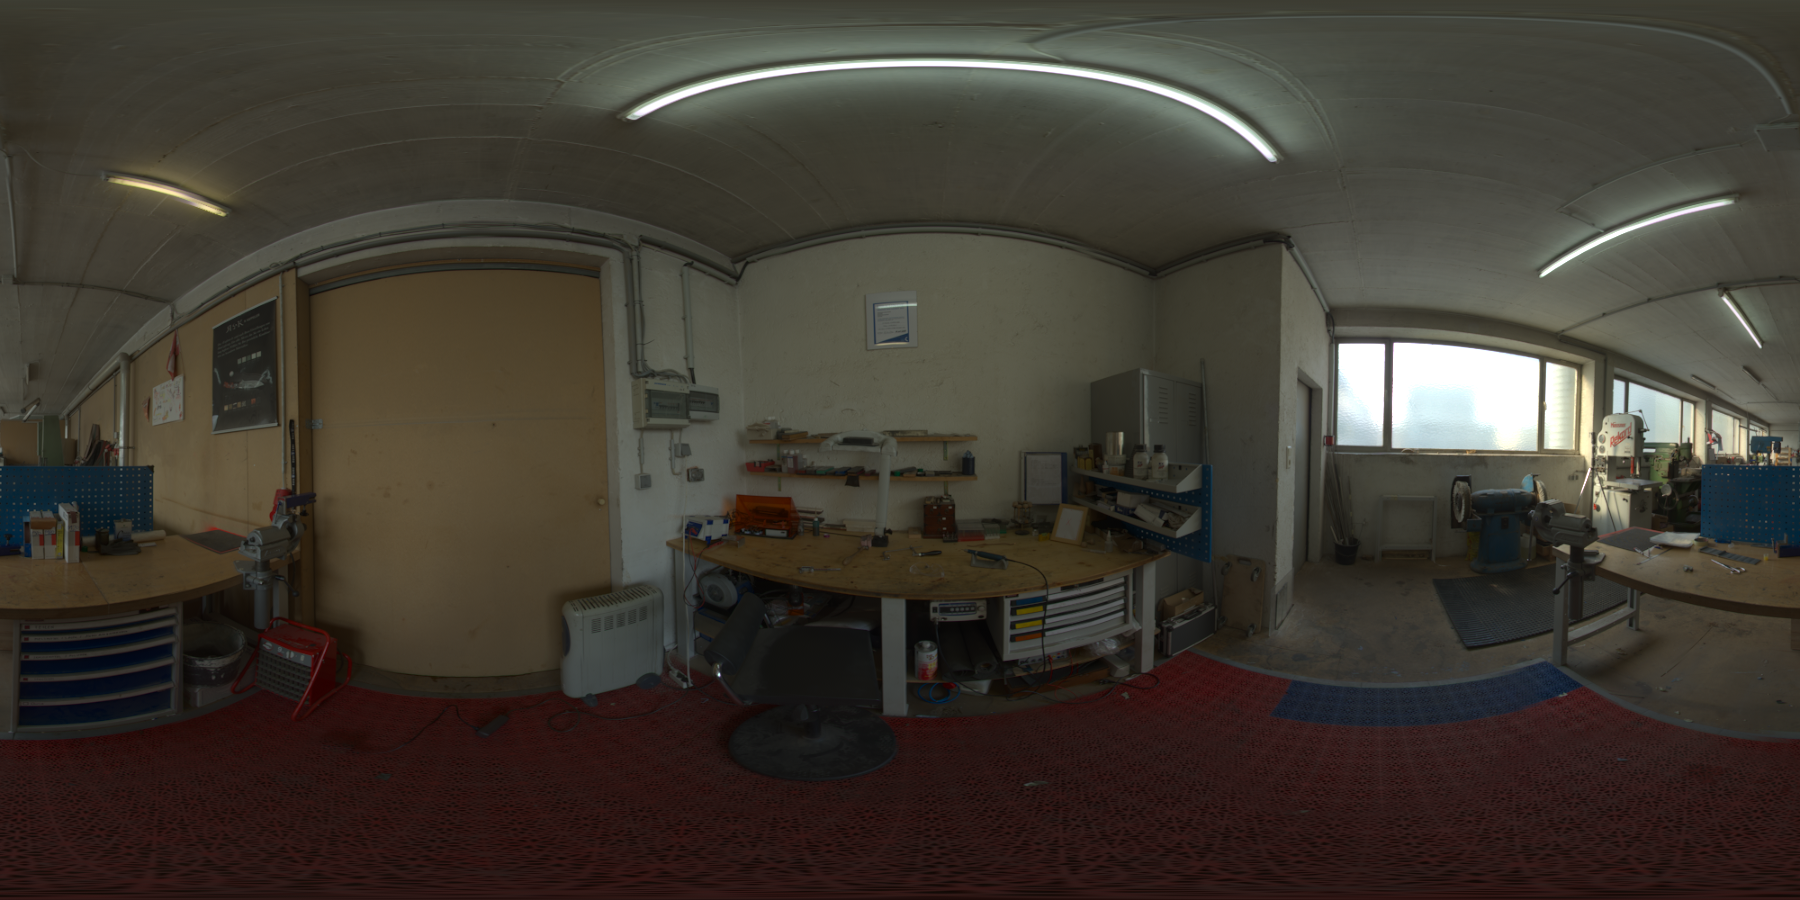 HDR_Arbeitsbereich_Tageslicht_Pano_me.png